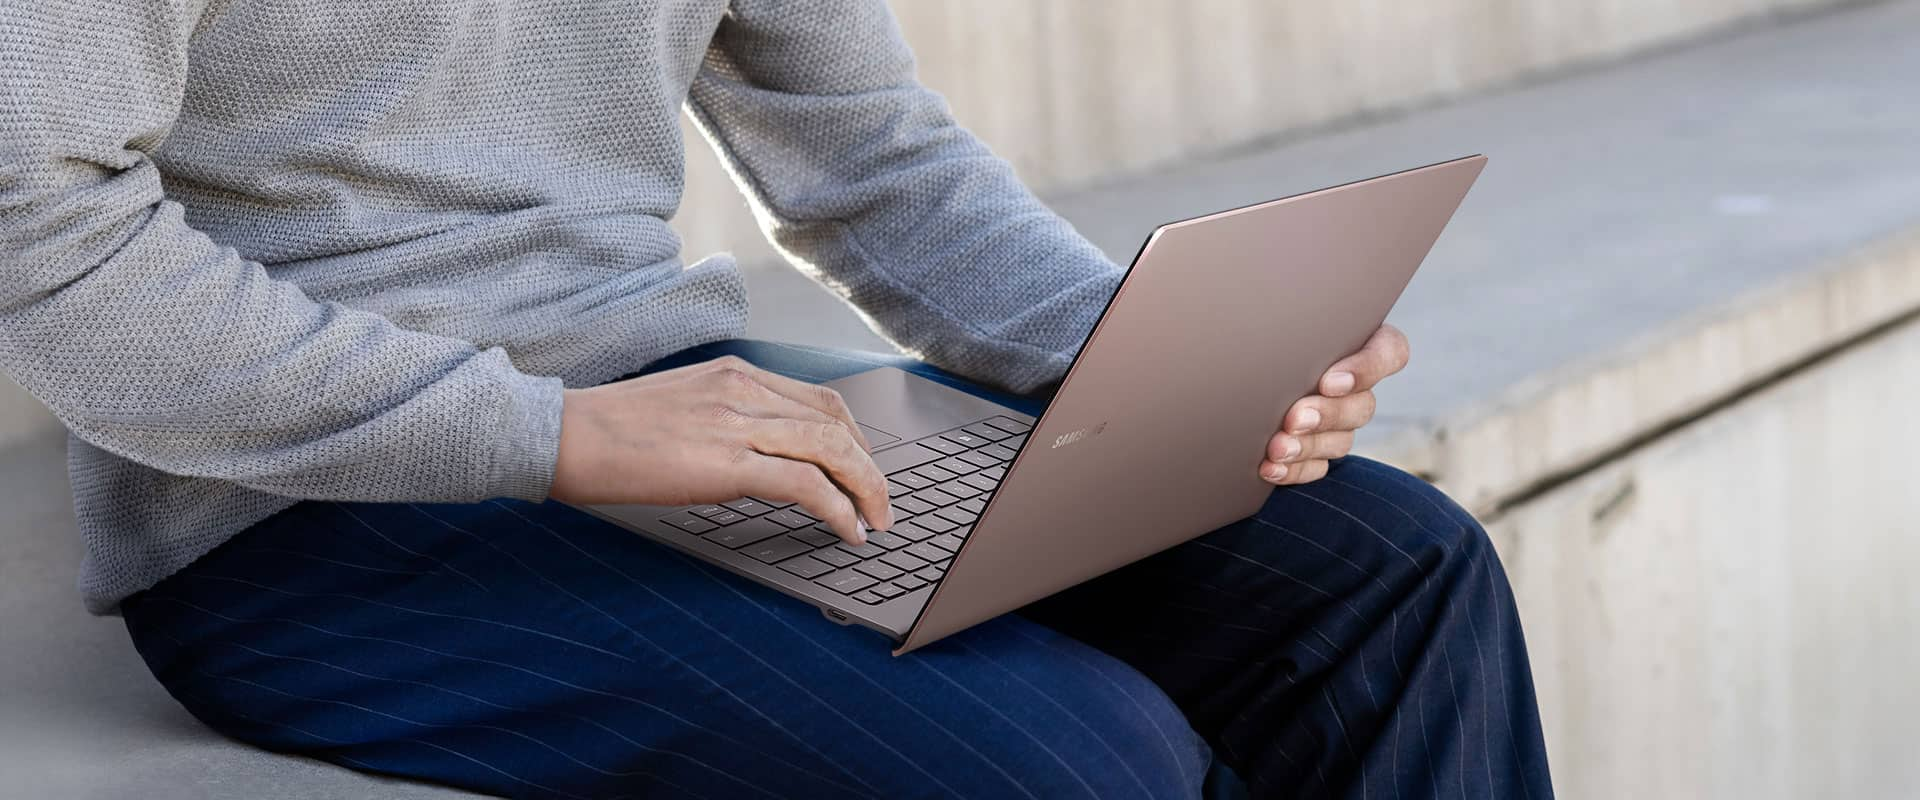 Samsung Galaxy Book S unveiled with Snapdragon 8cx processor